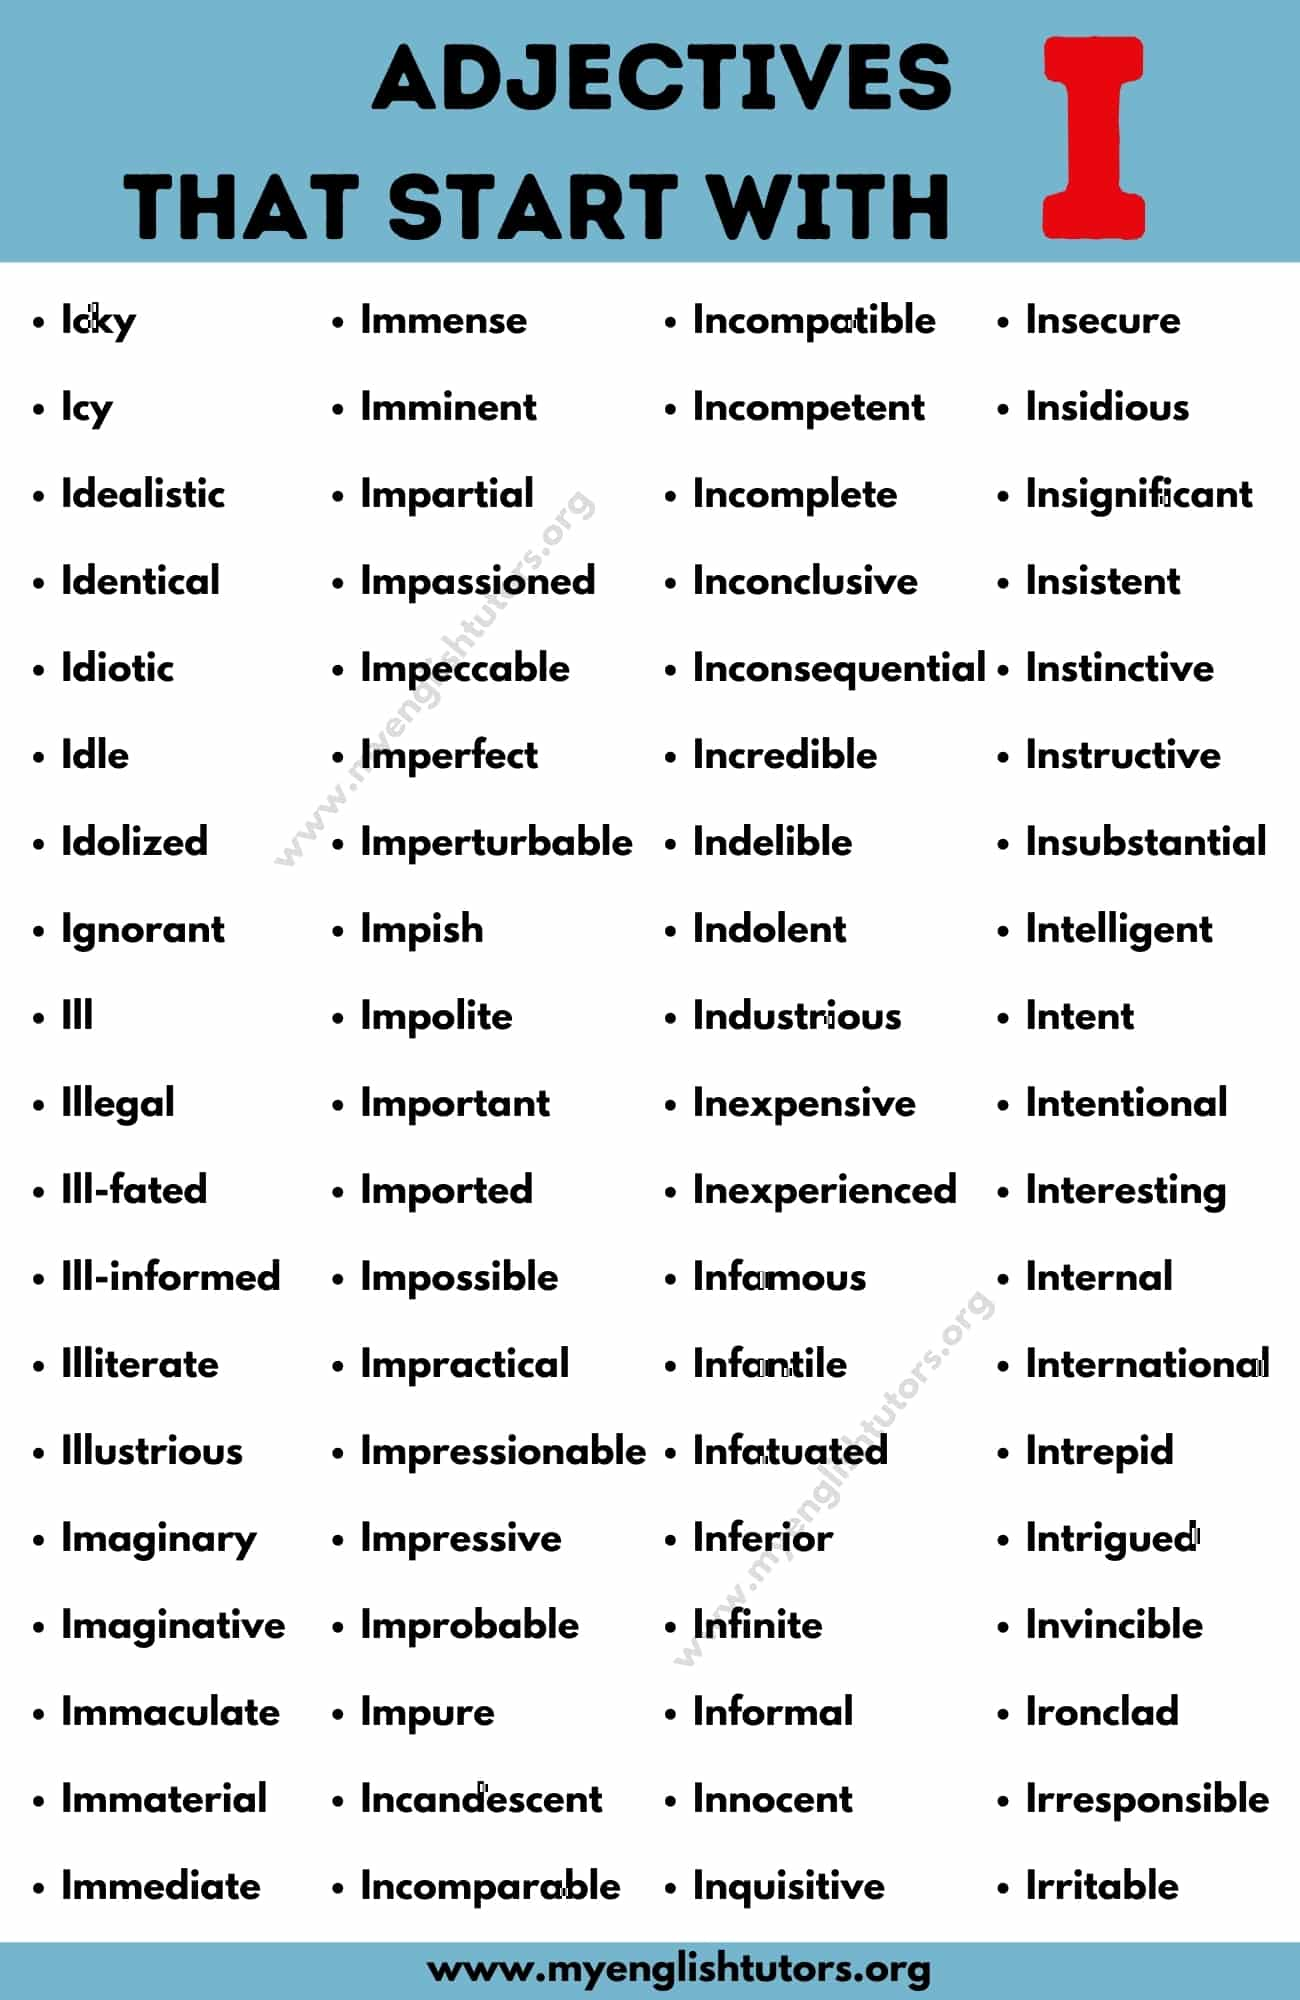 Adjectives that Start with I: List of 80+ Useful Adjectives Starting with I